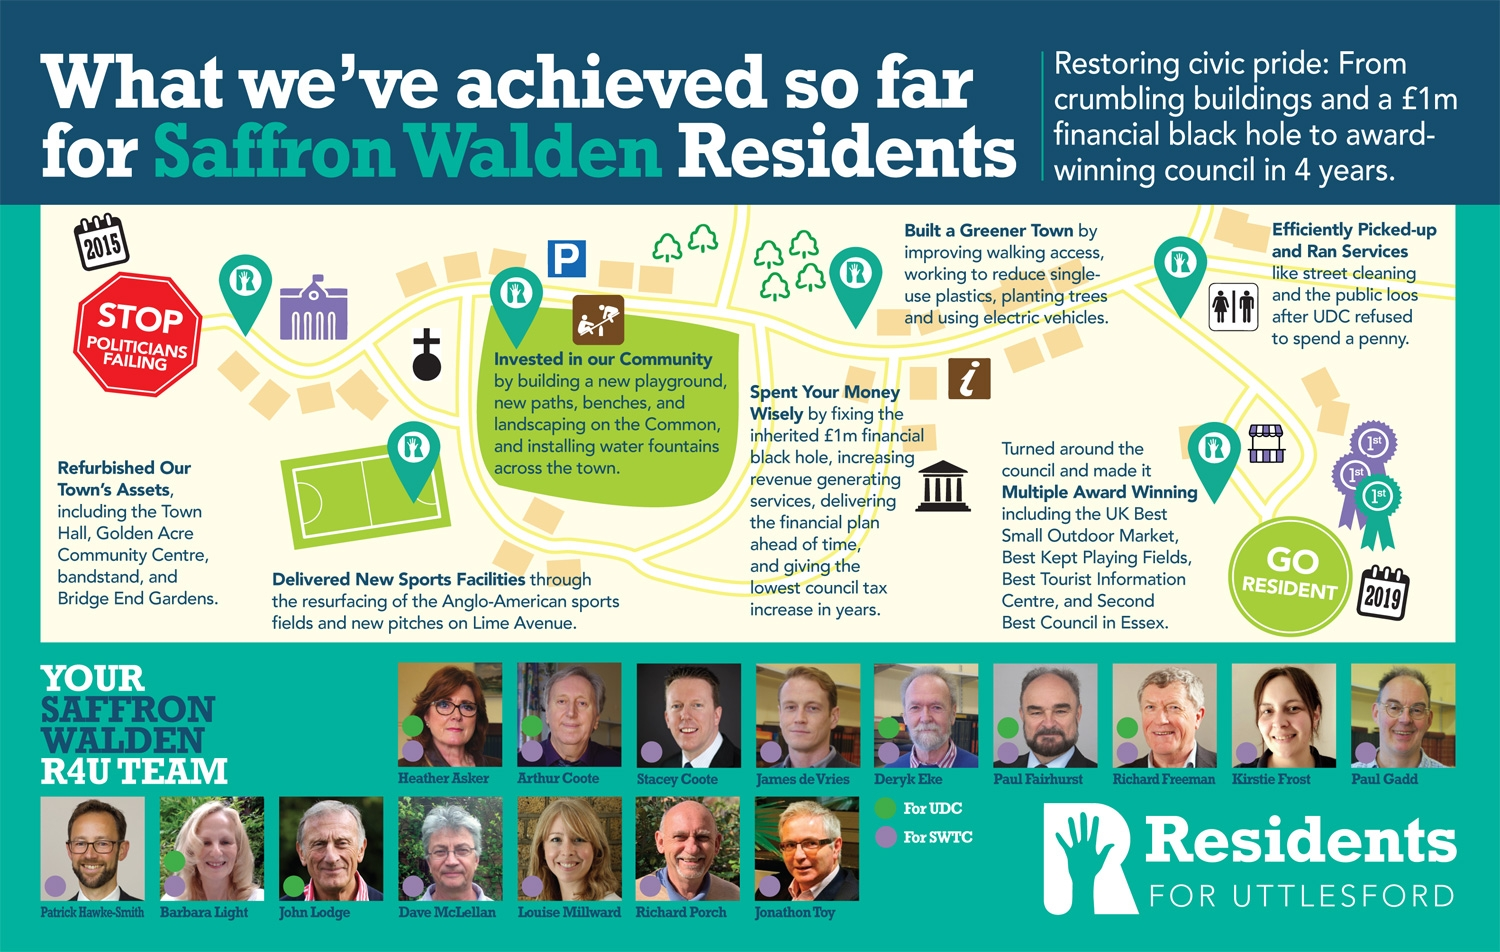 Residents for Uttlesford achievements in Saffron Walden